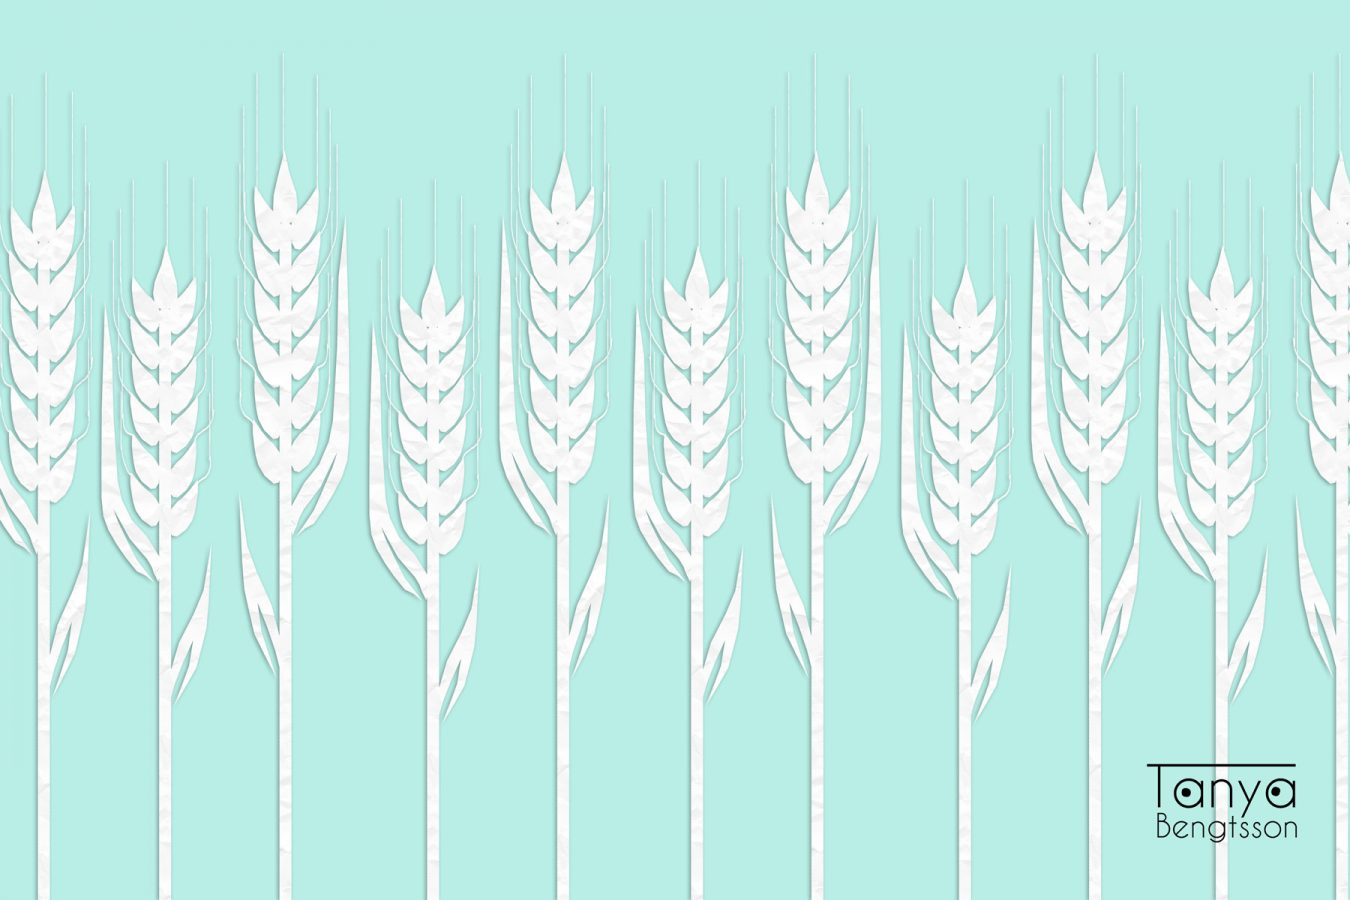 A graphic picture of wheat which looks like white paper cut outs against a turquoise background.